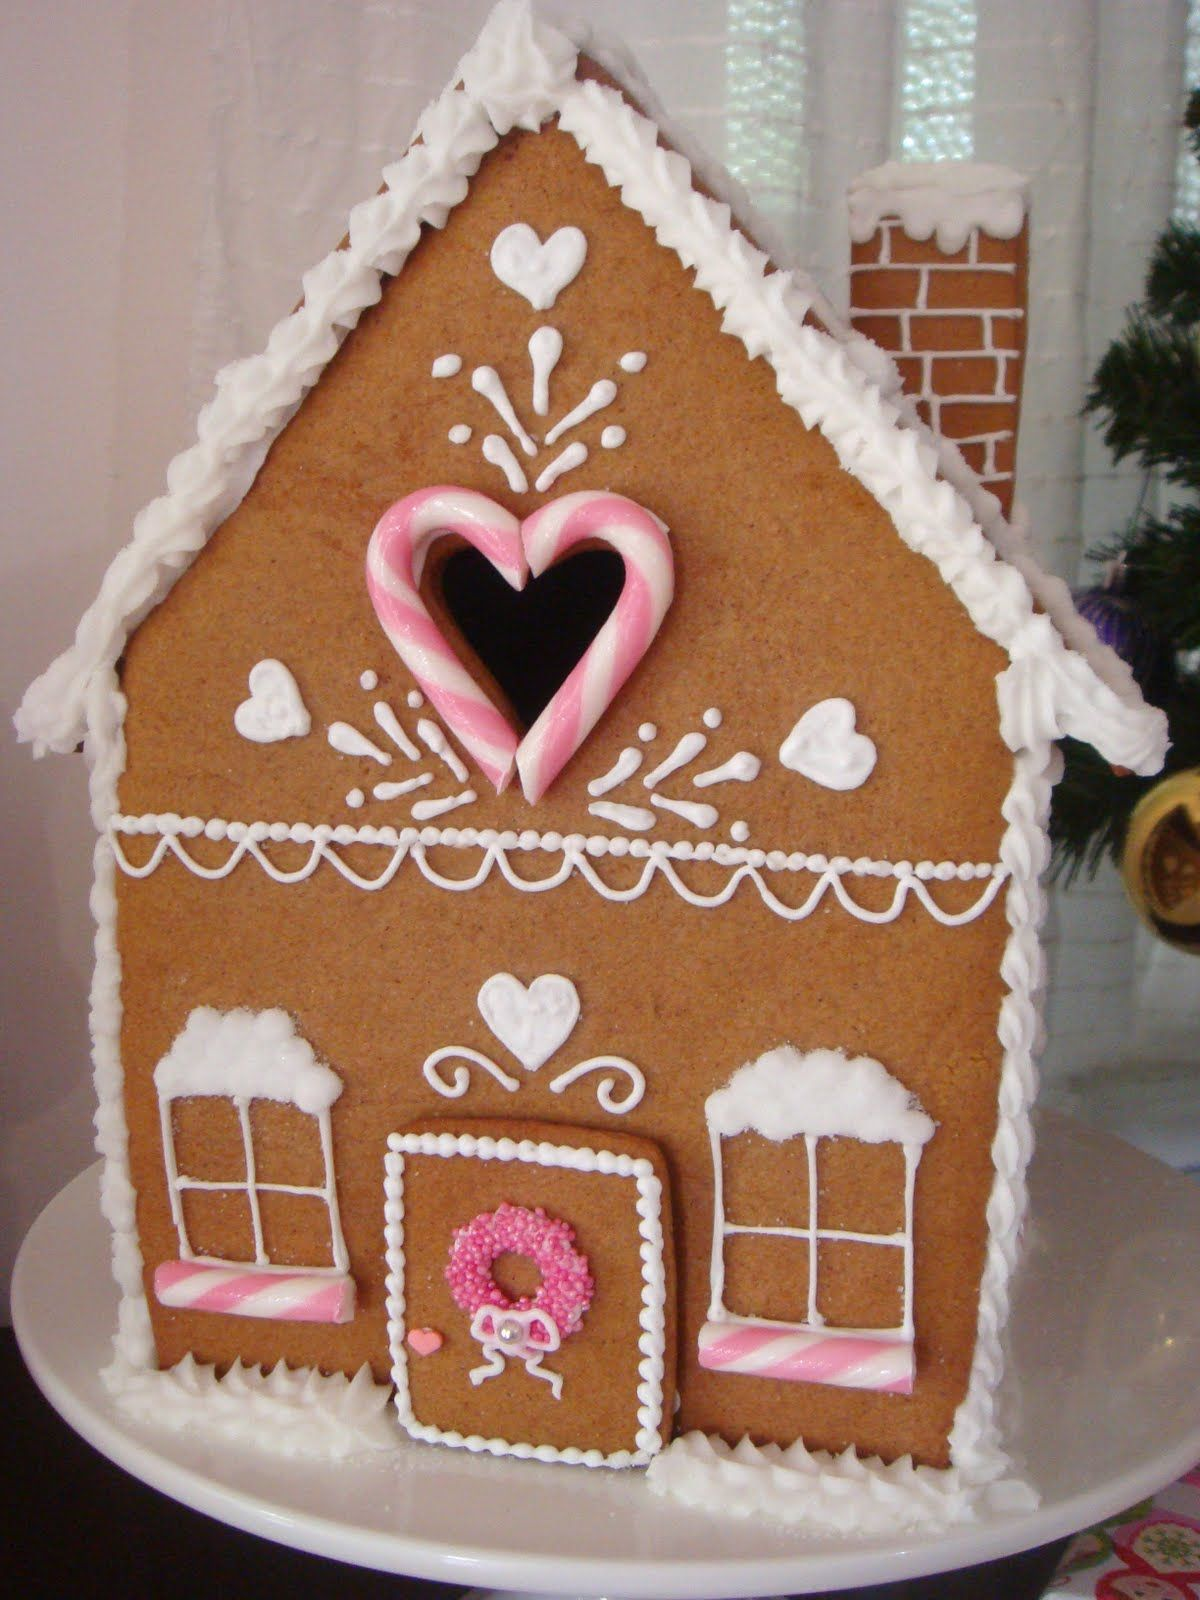 Premade Gingerbread Houses Butter Hearts Sugar Gingerbread House Part One Making And